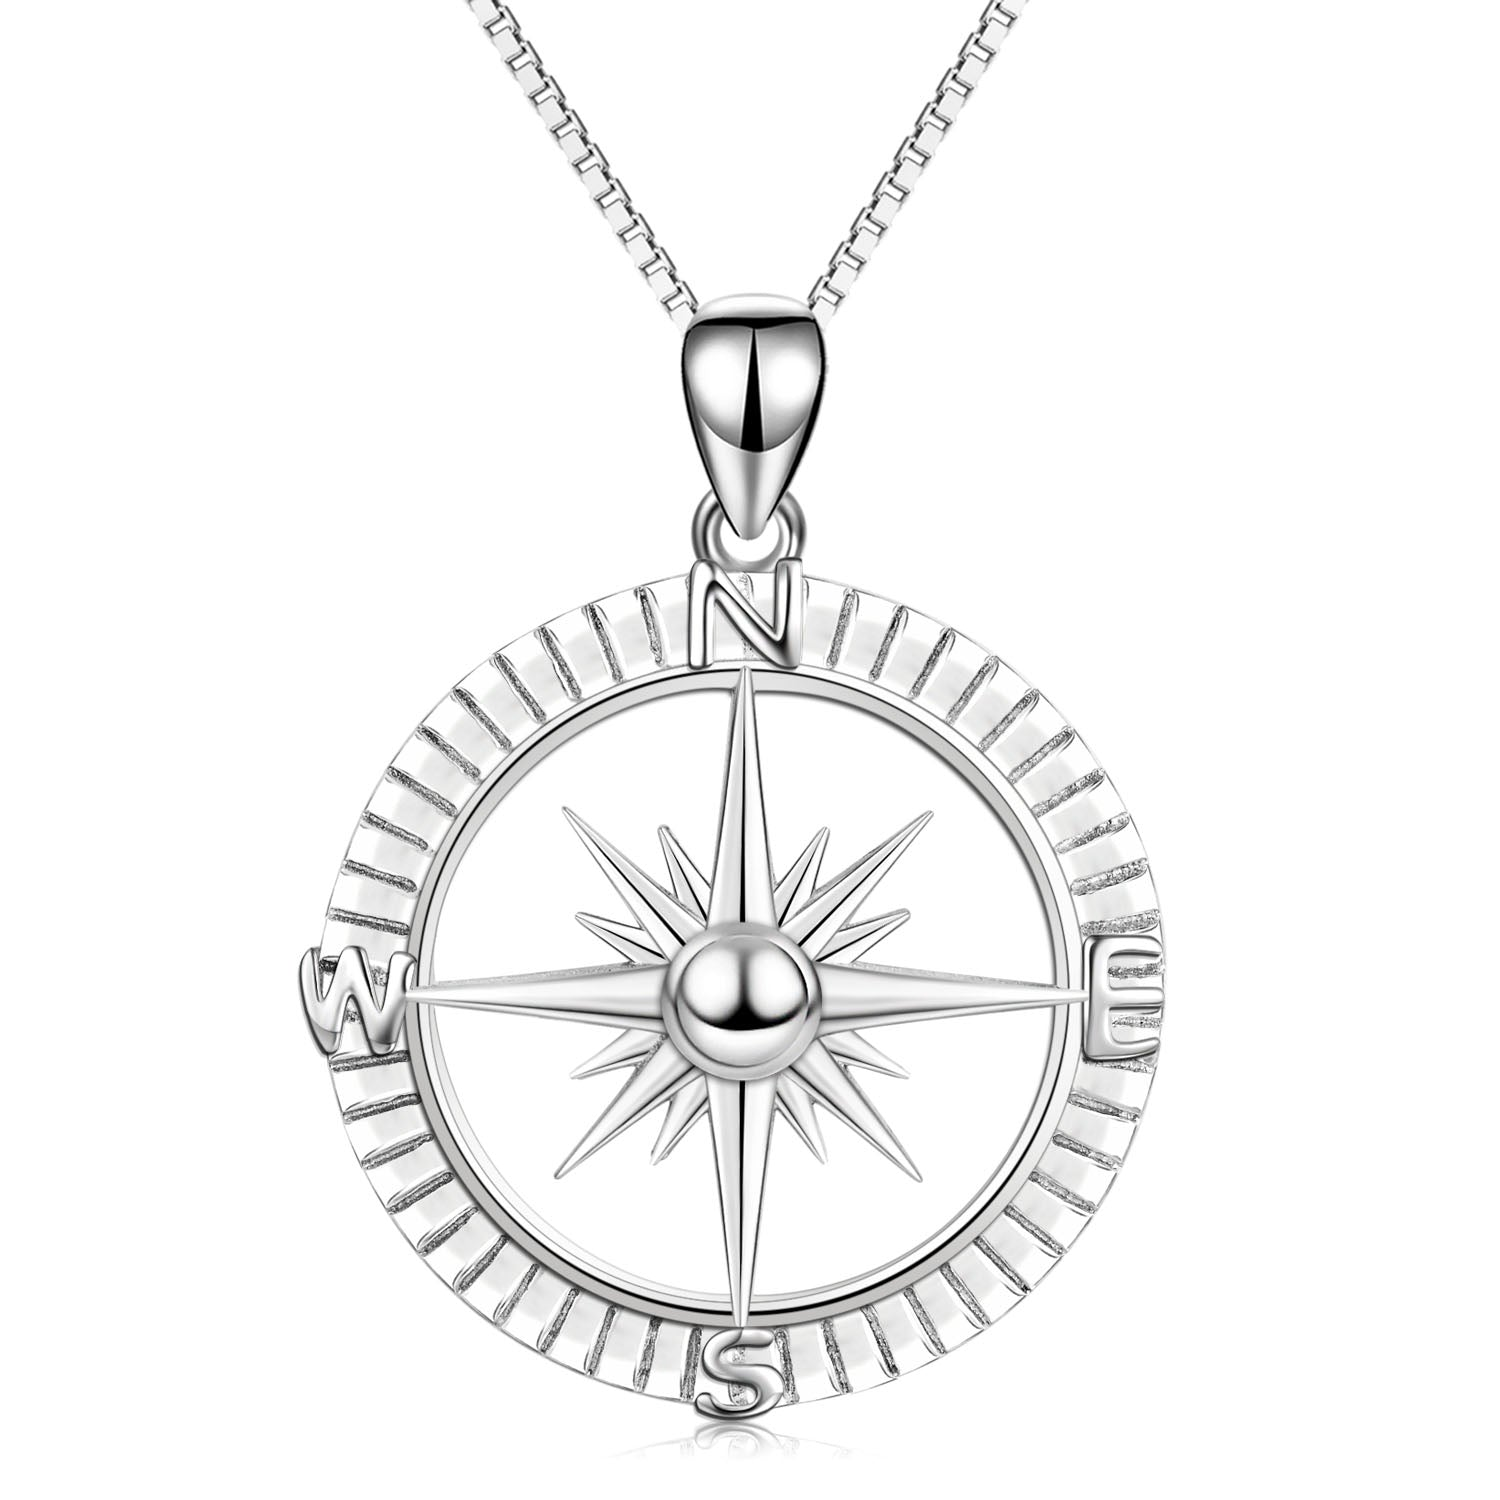 Compass Necklace East West South North Man Traveling Jewelry Necklace